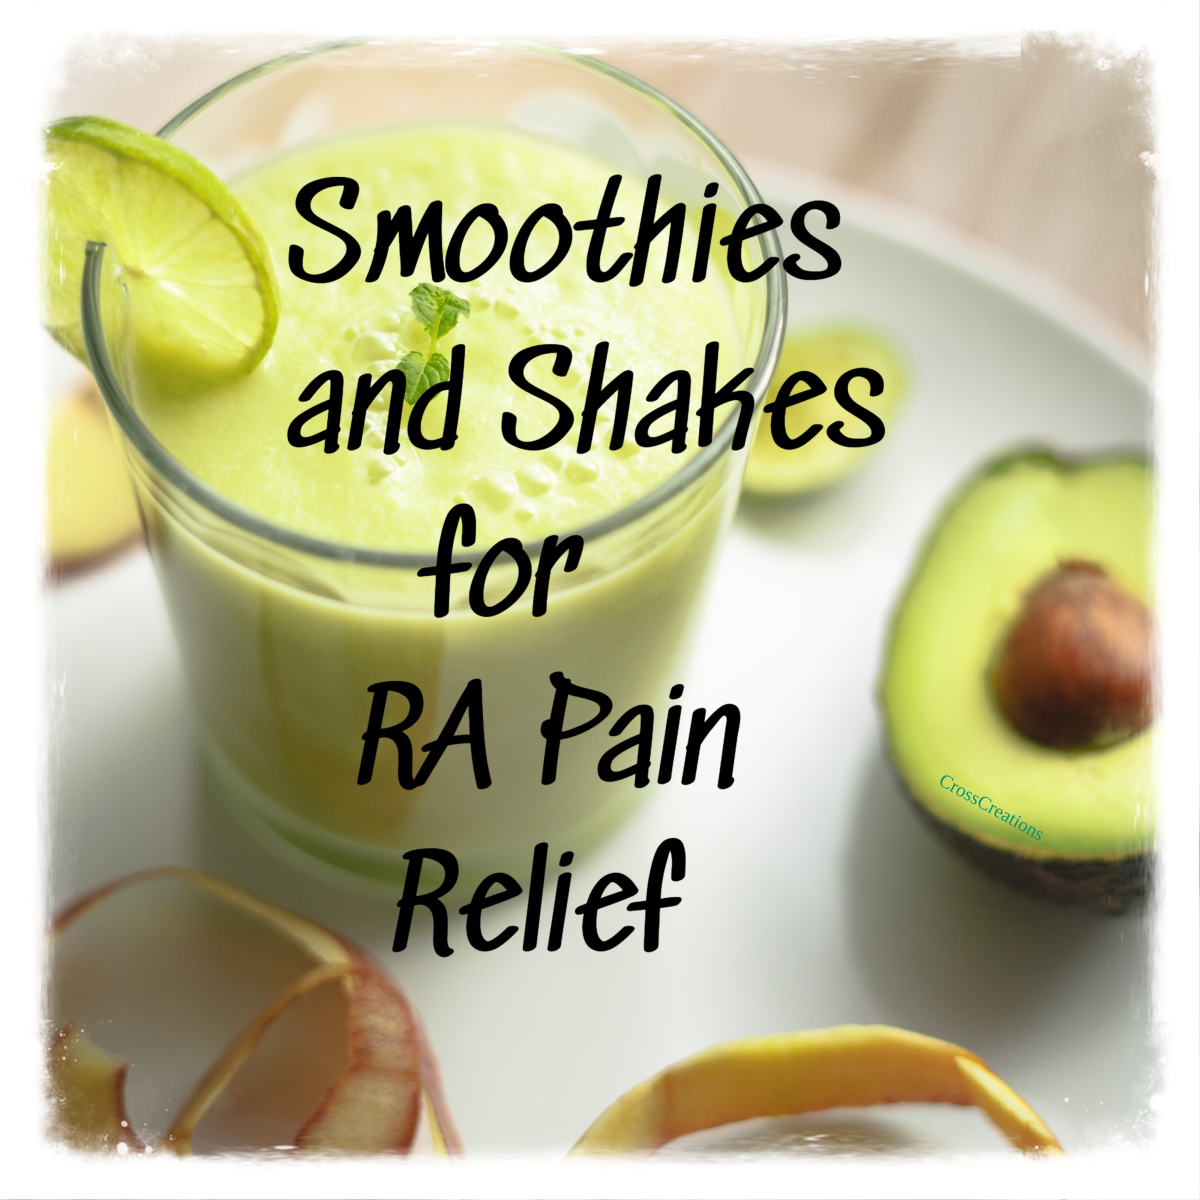 Smoothies and Shakes for RA Pain Relief